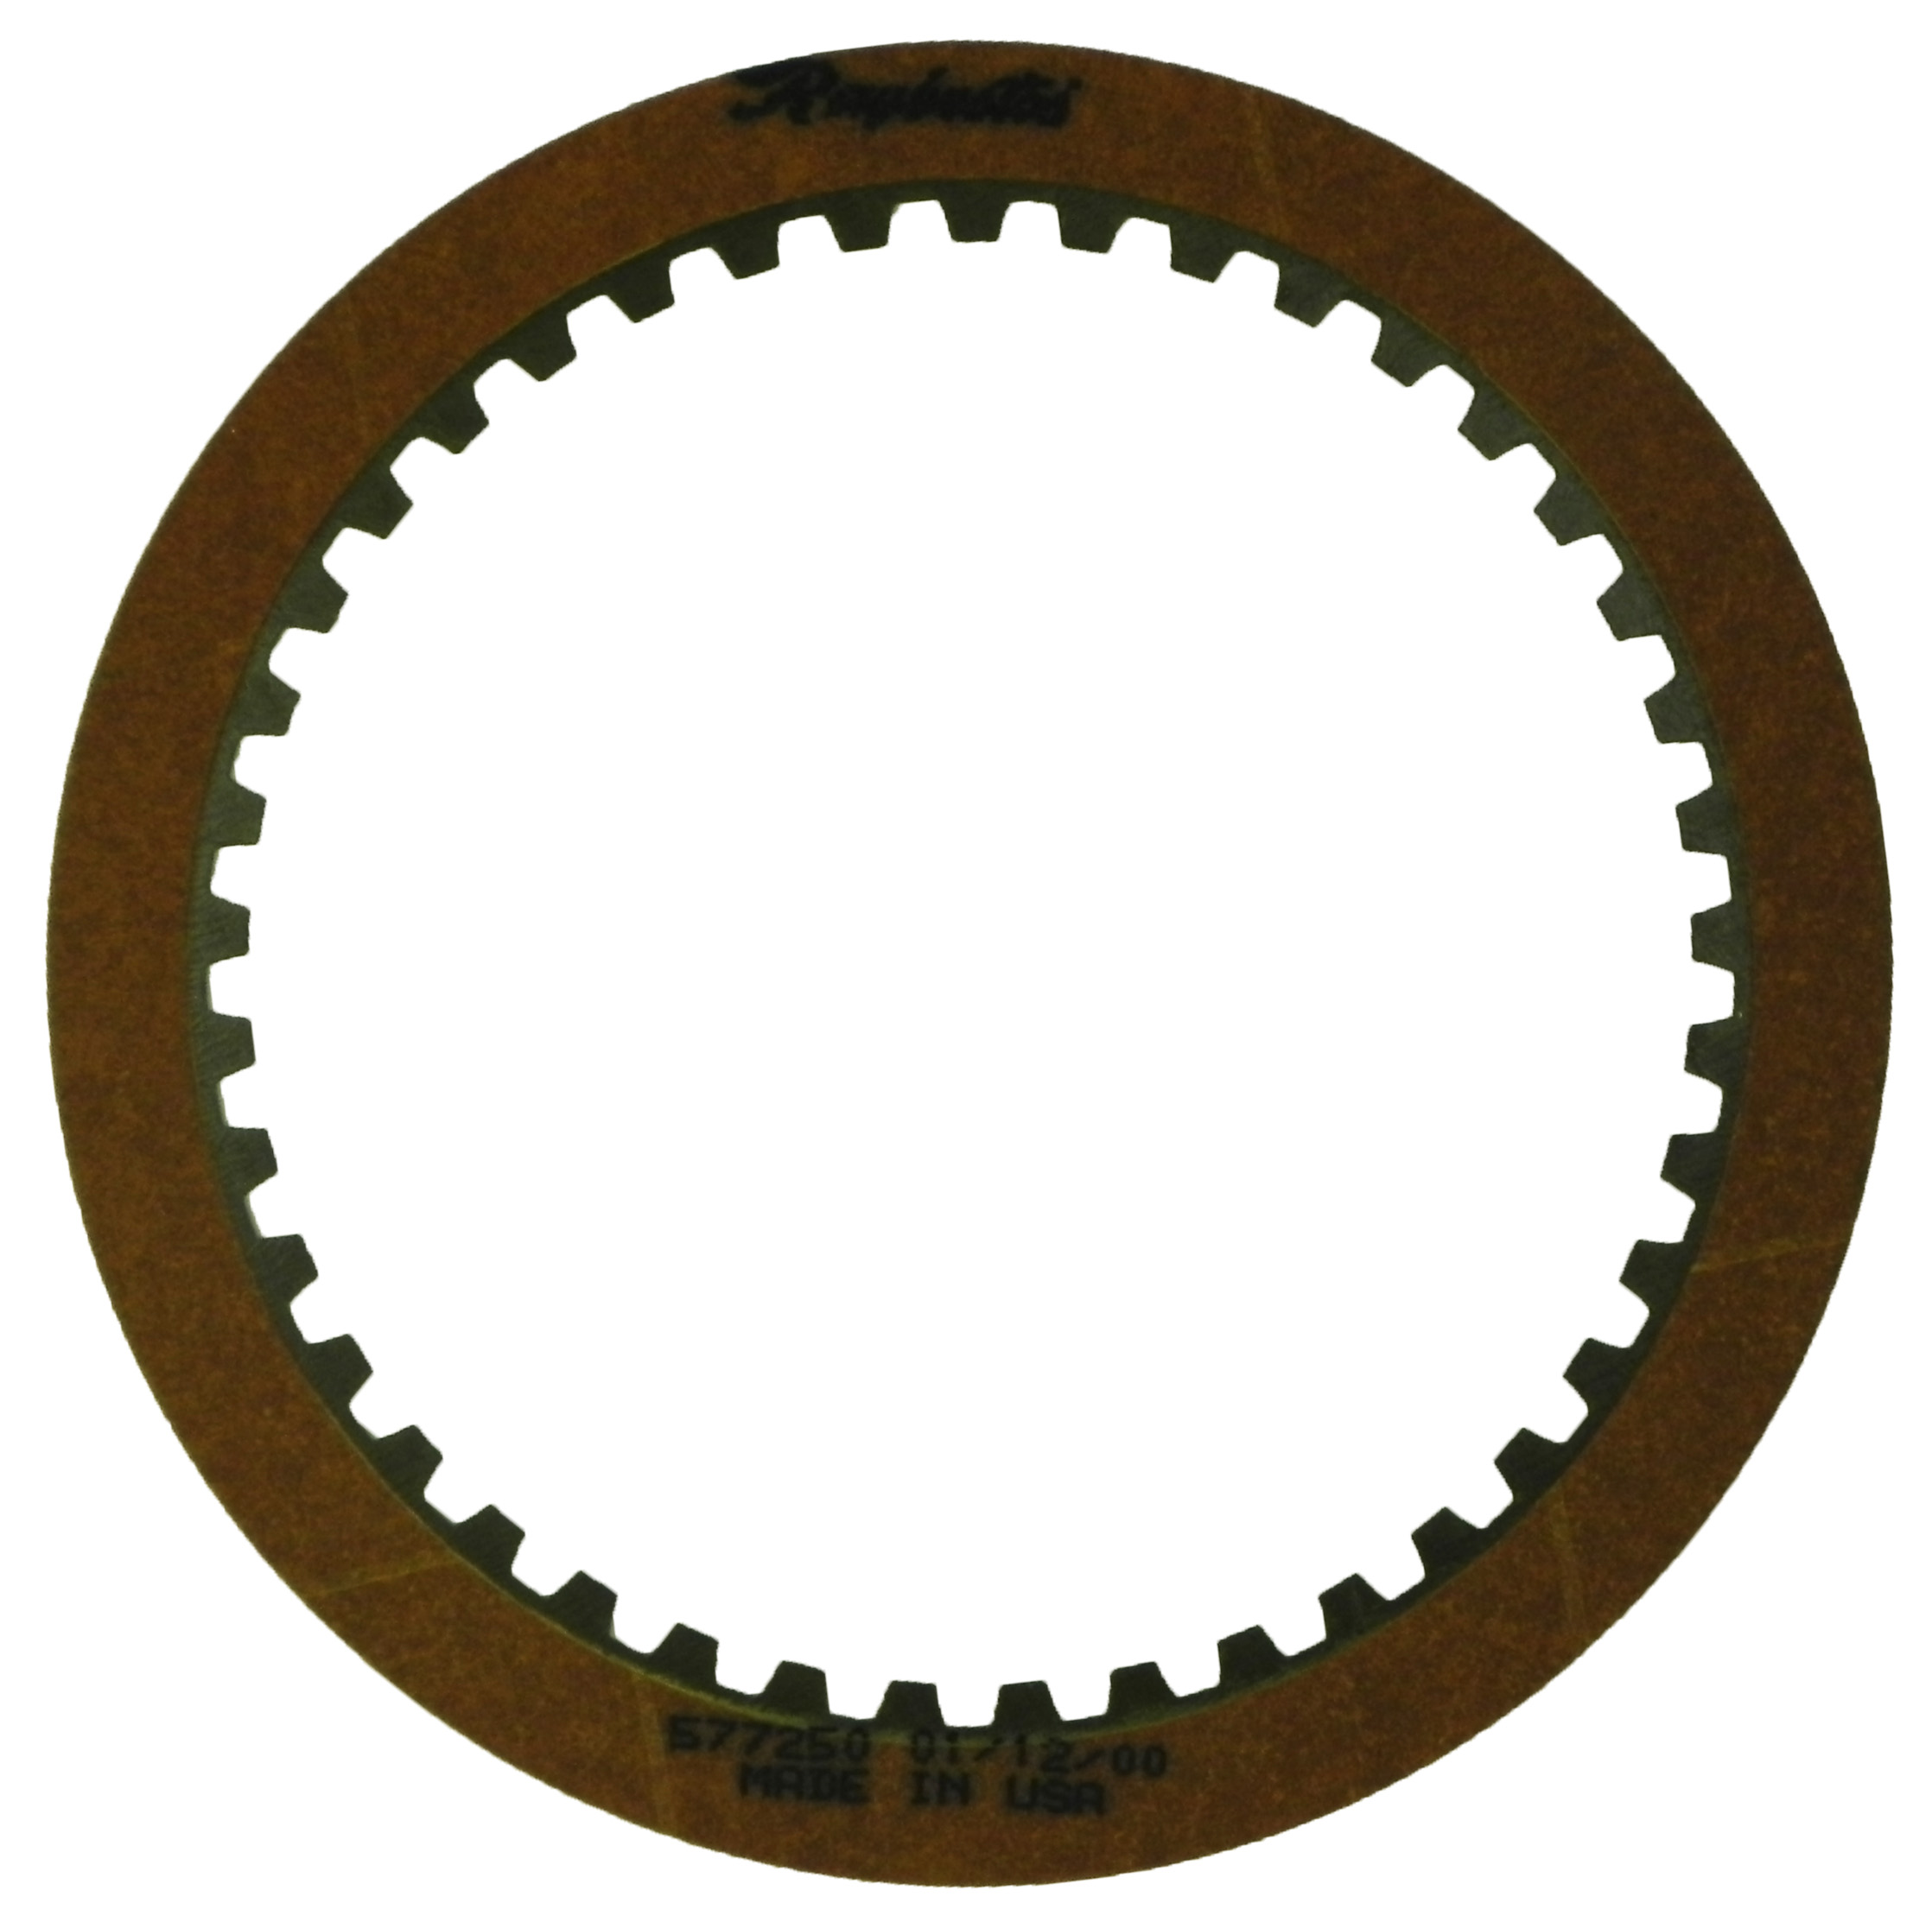 R577250 | 1987-ON Friction Clutch Plate GEN 2, Blue Plate Special Reverse Input GEN 2, Raybestos Product (High Static)